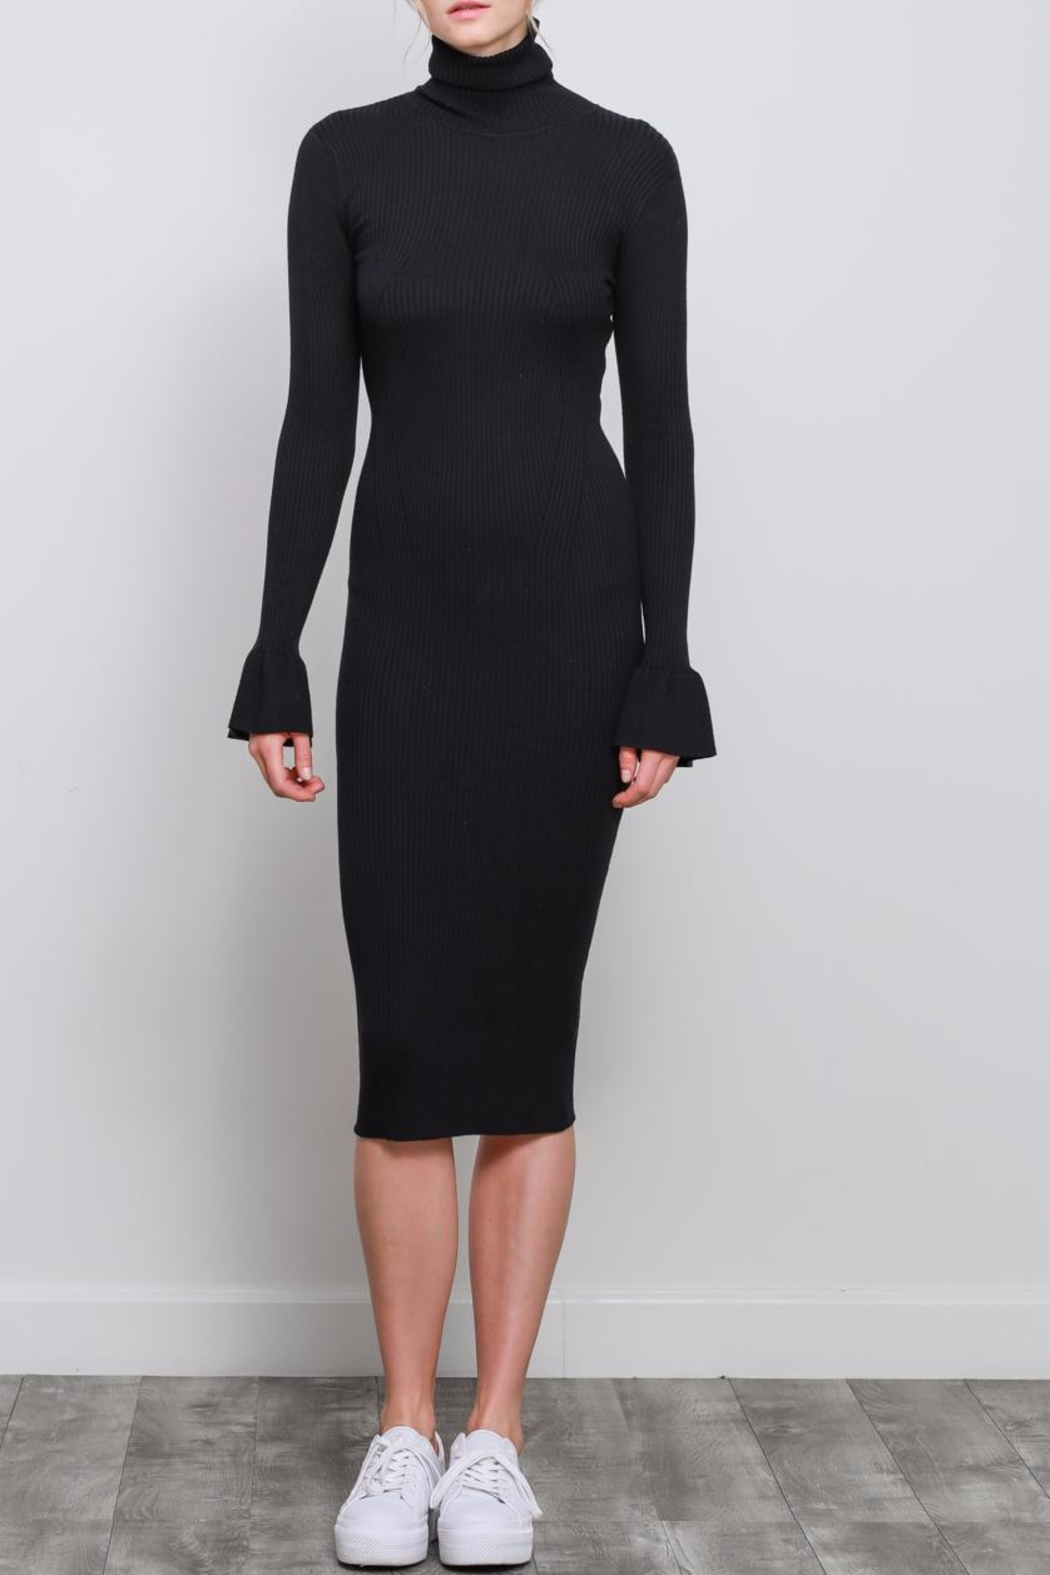 Mustard Seed Ribbed Turtleneck Dress - Main Image